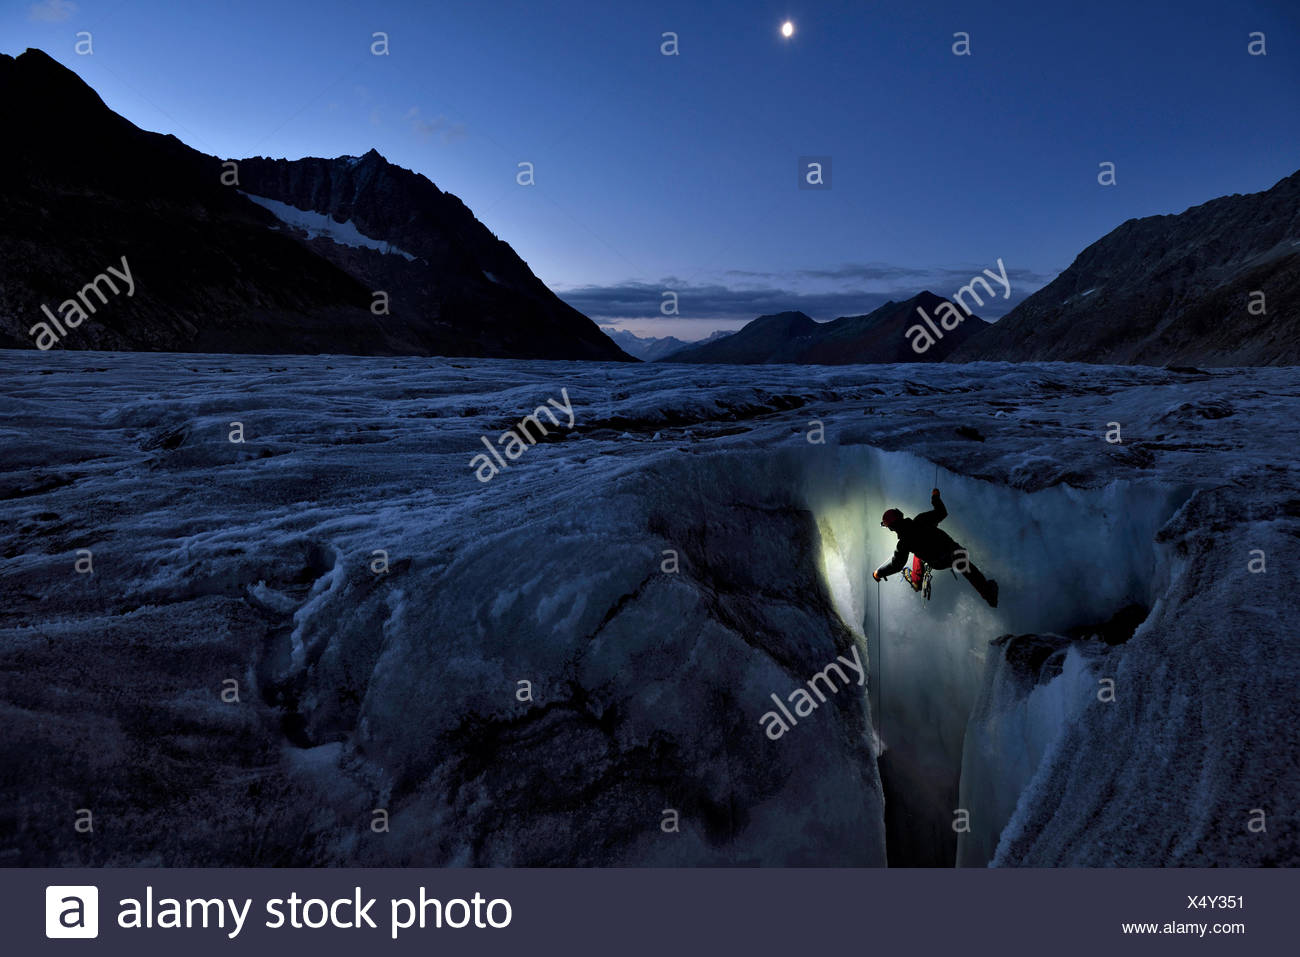 In the early evening light, an Italian cave explorer begins his descent down a moulin on the Aletschgletscher when there is no risk of surface meltwat - Stock Image